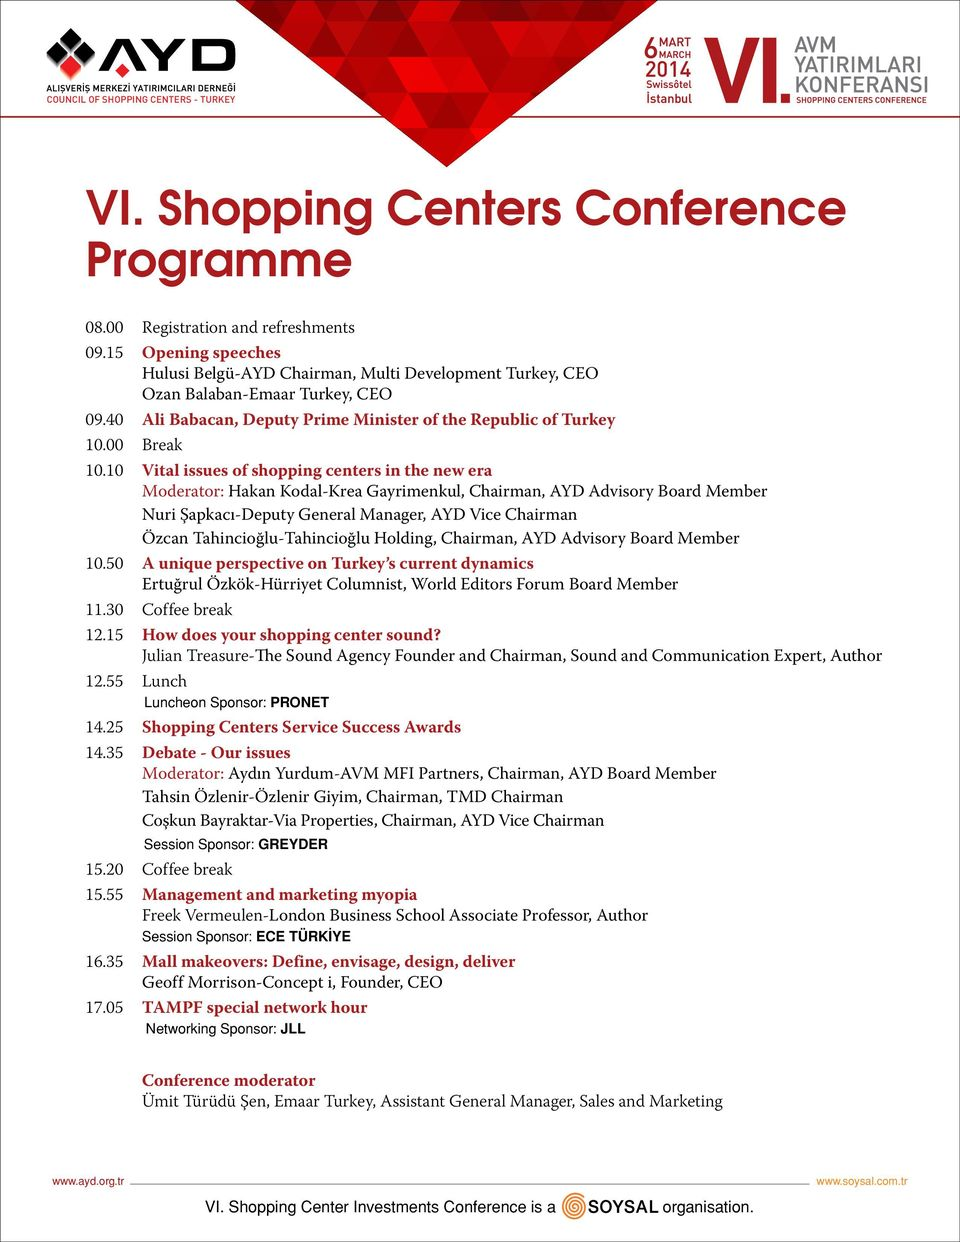 10 Vital issues of shopping centers in the new era Moderator: Hakan Kodal-Krea Gayrimenkul, Chairman, AYD Advisory Board Member Nuri Şapkacı-Deputy General Manager, AYD Vice Chairman Özcan